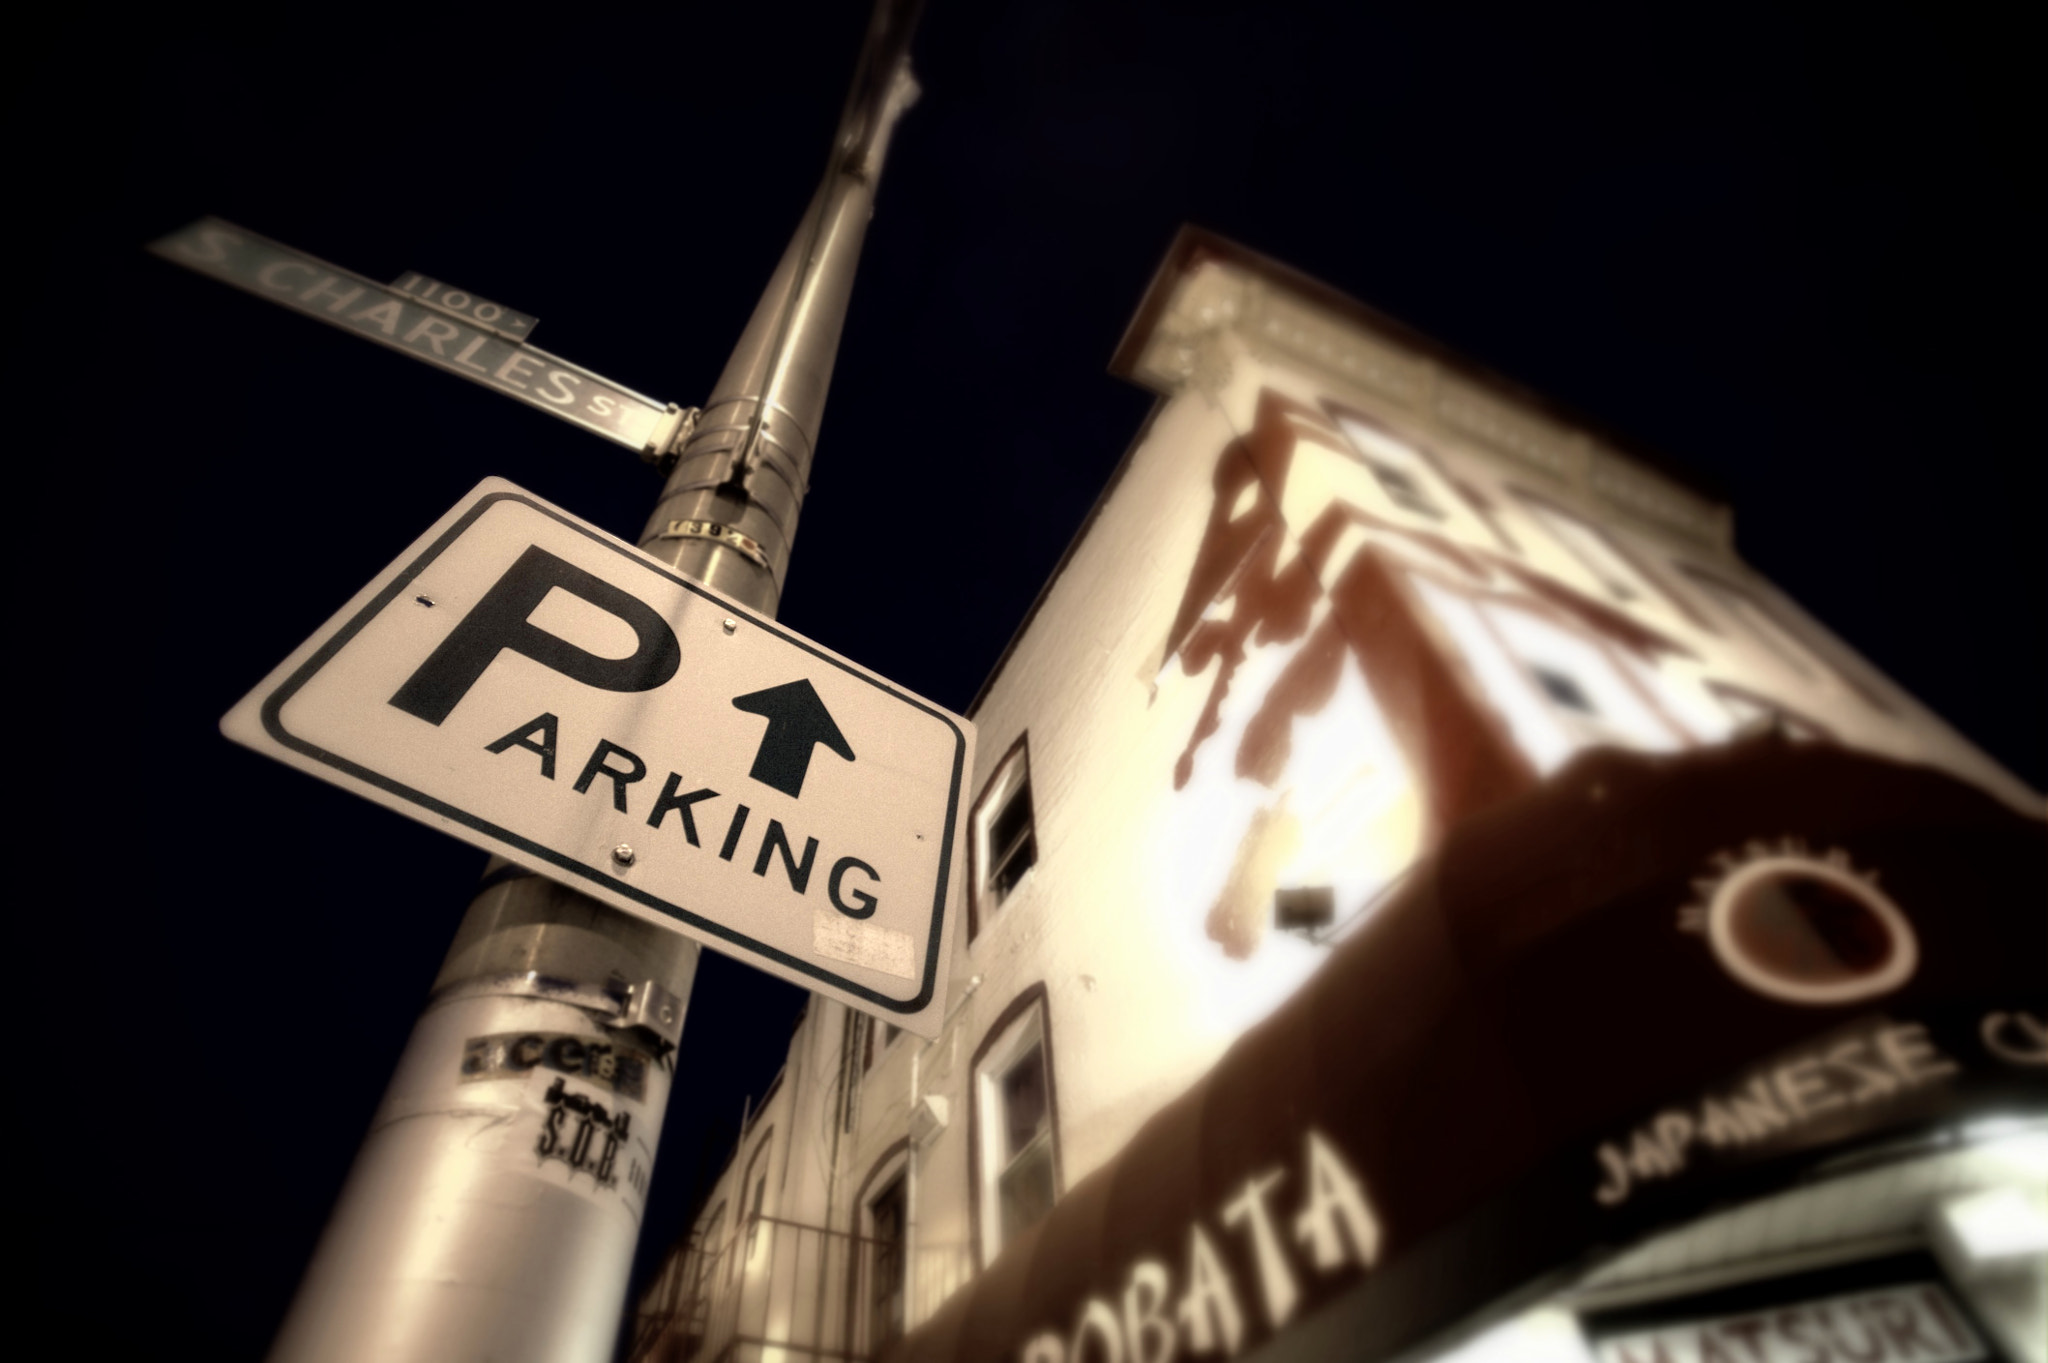 Photograph Parking, Where? by Anocha Yimsiriwattana on 500px